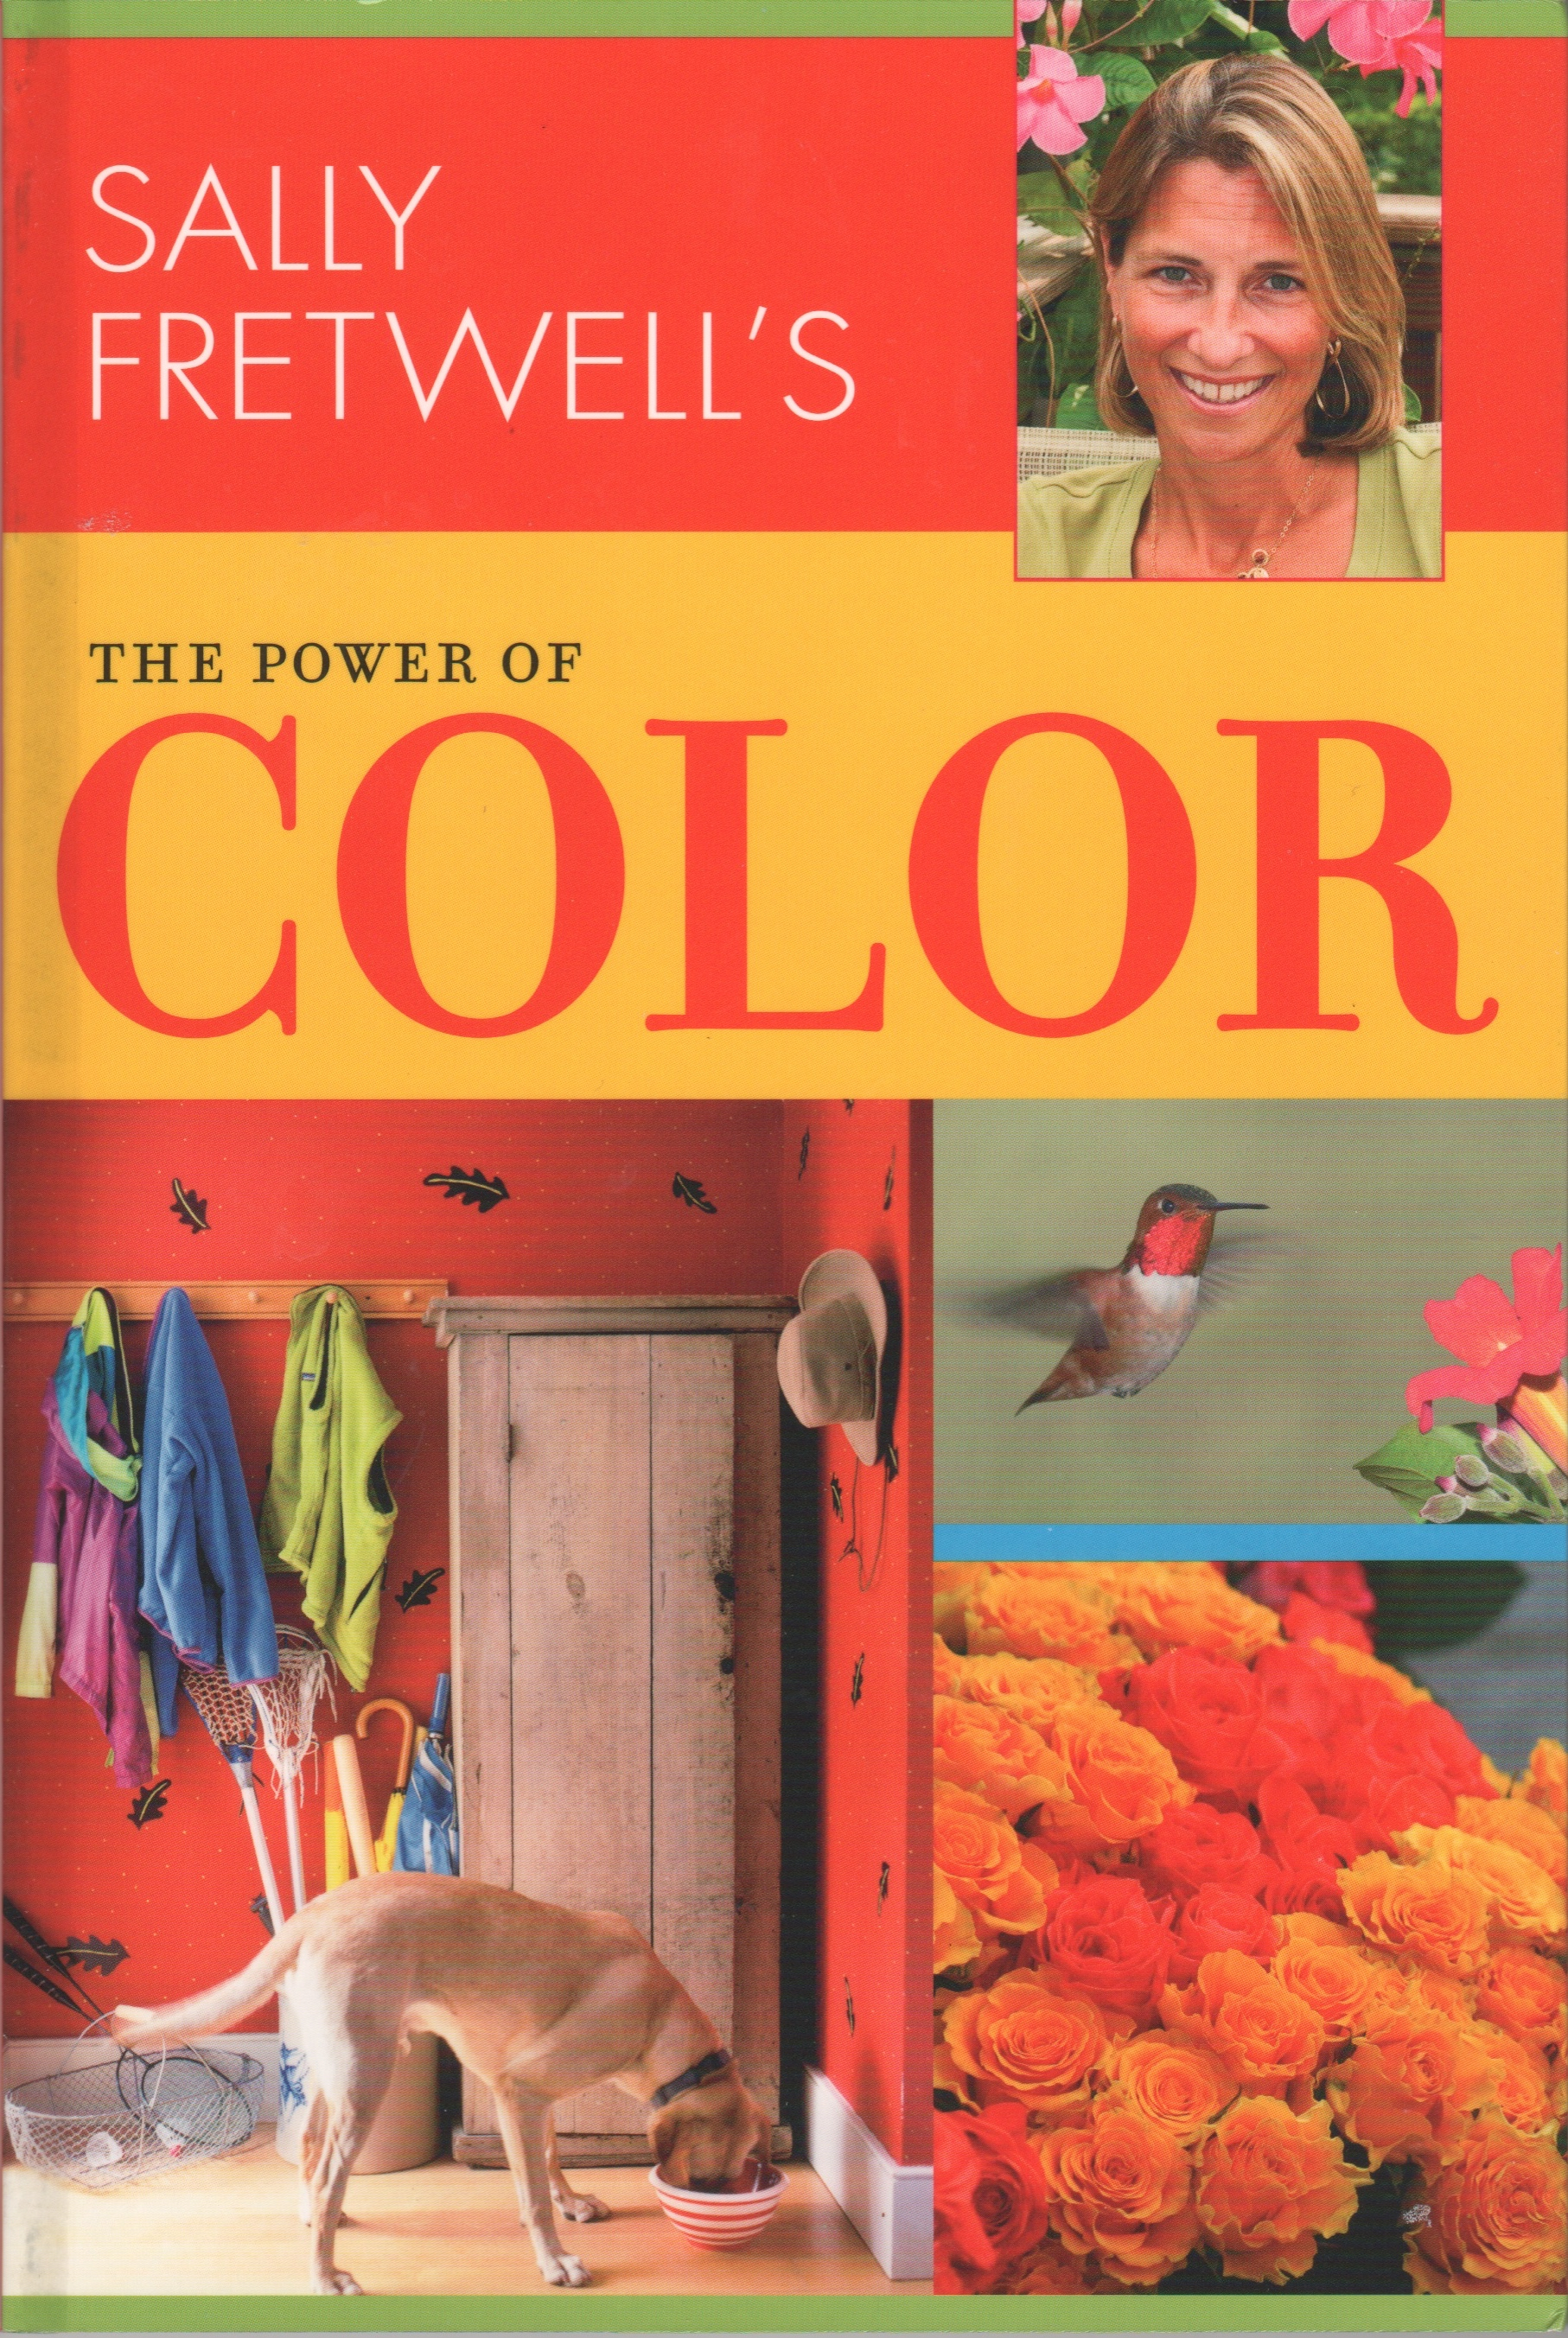 Sally Fretwell's The Power of Color